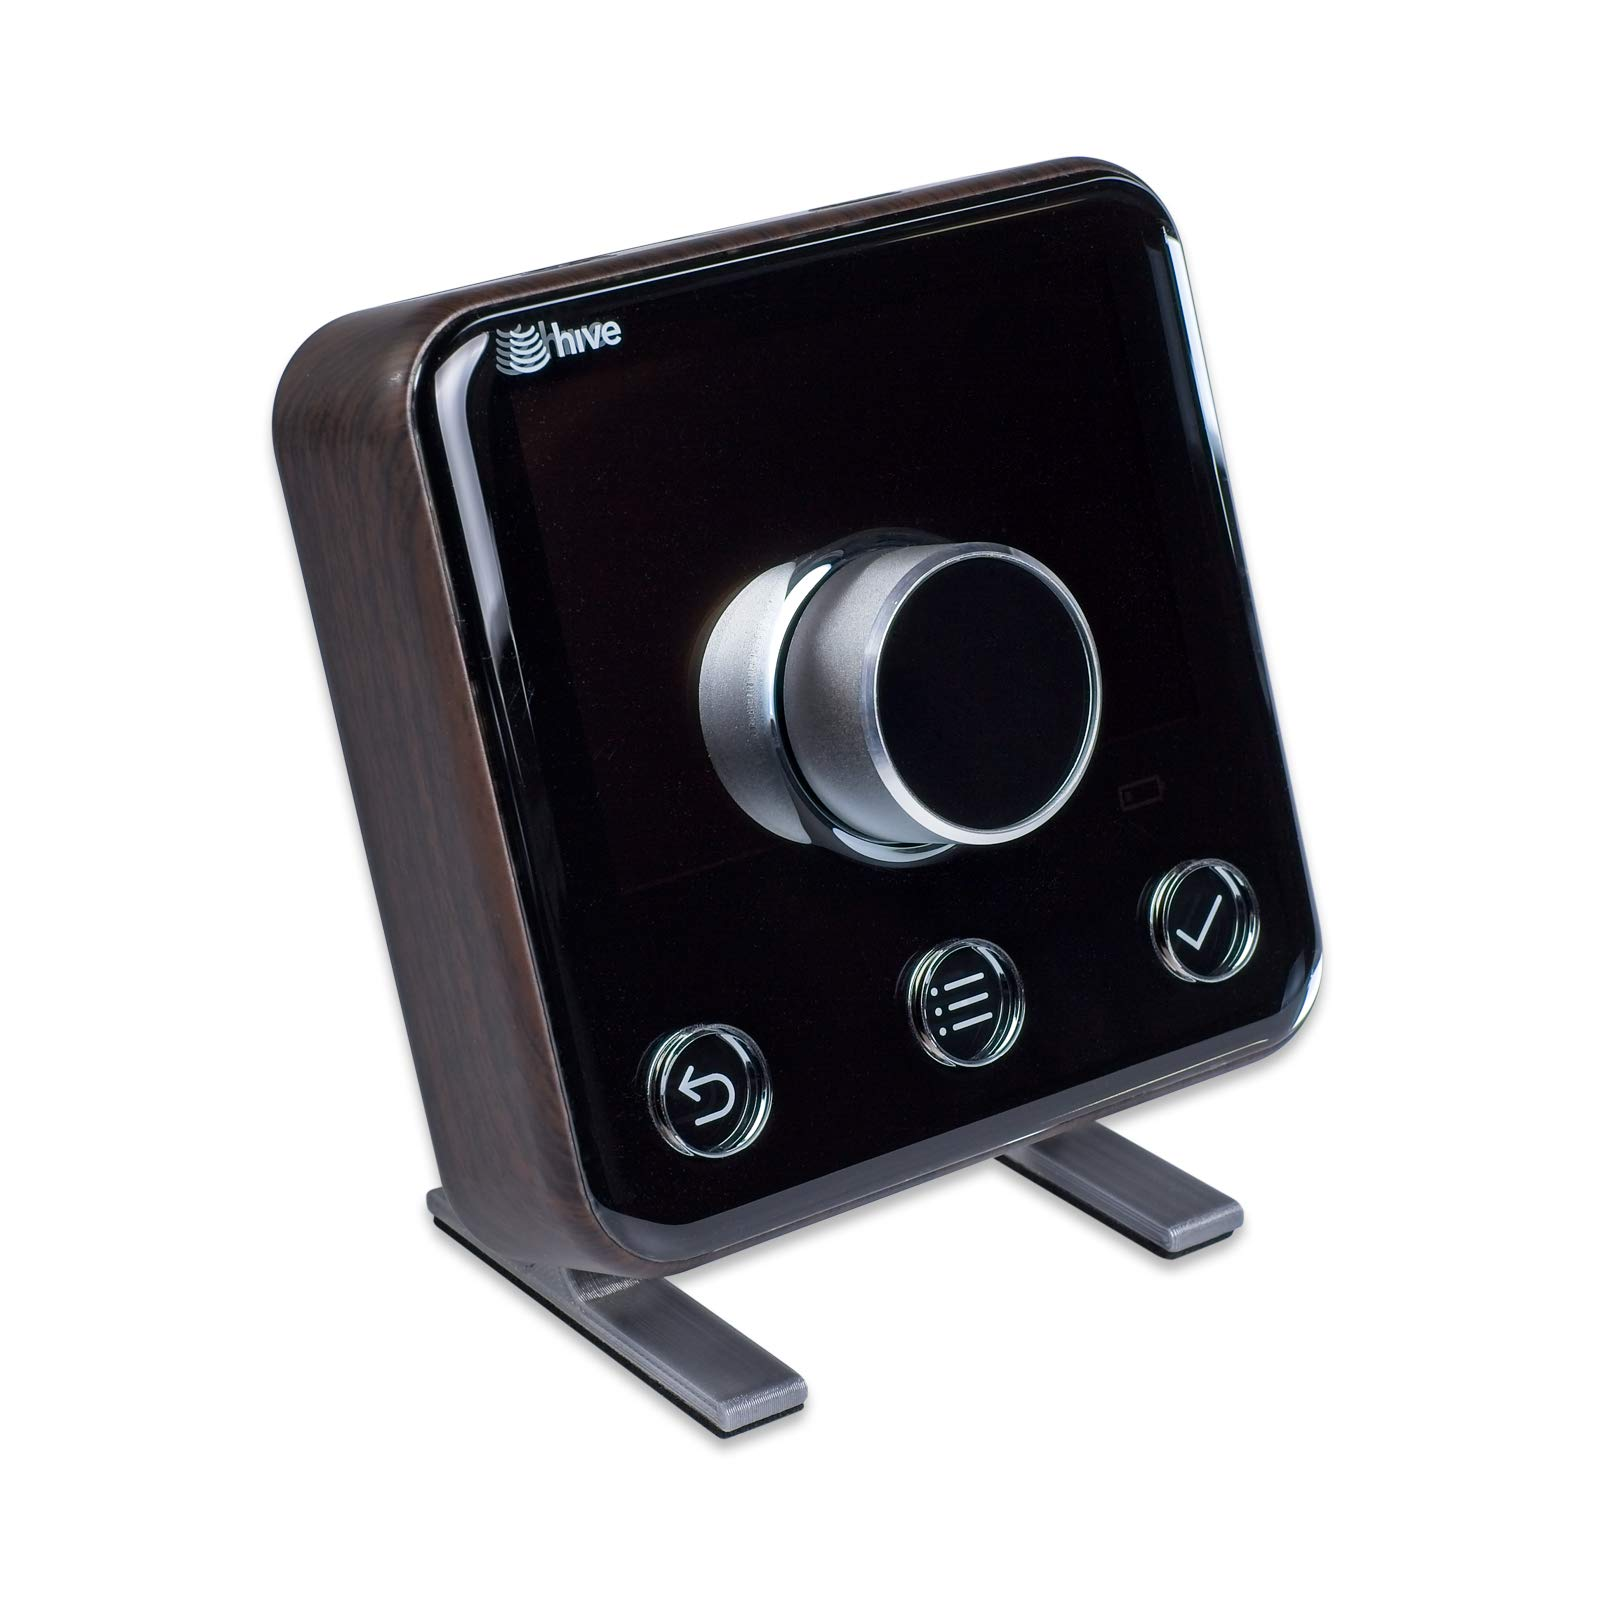 Hive Thermostat Wall Mount